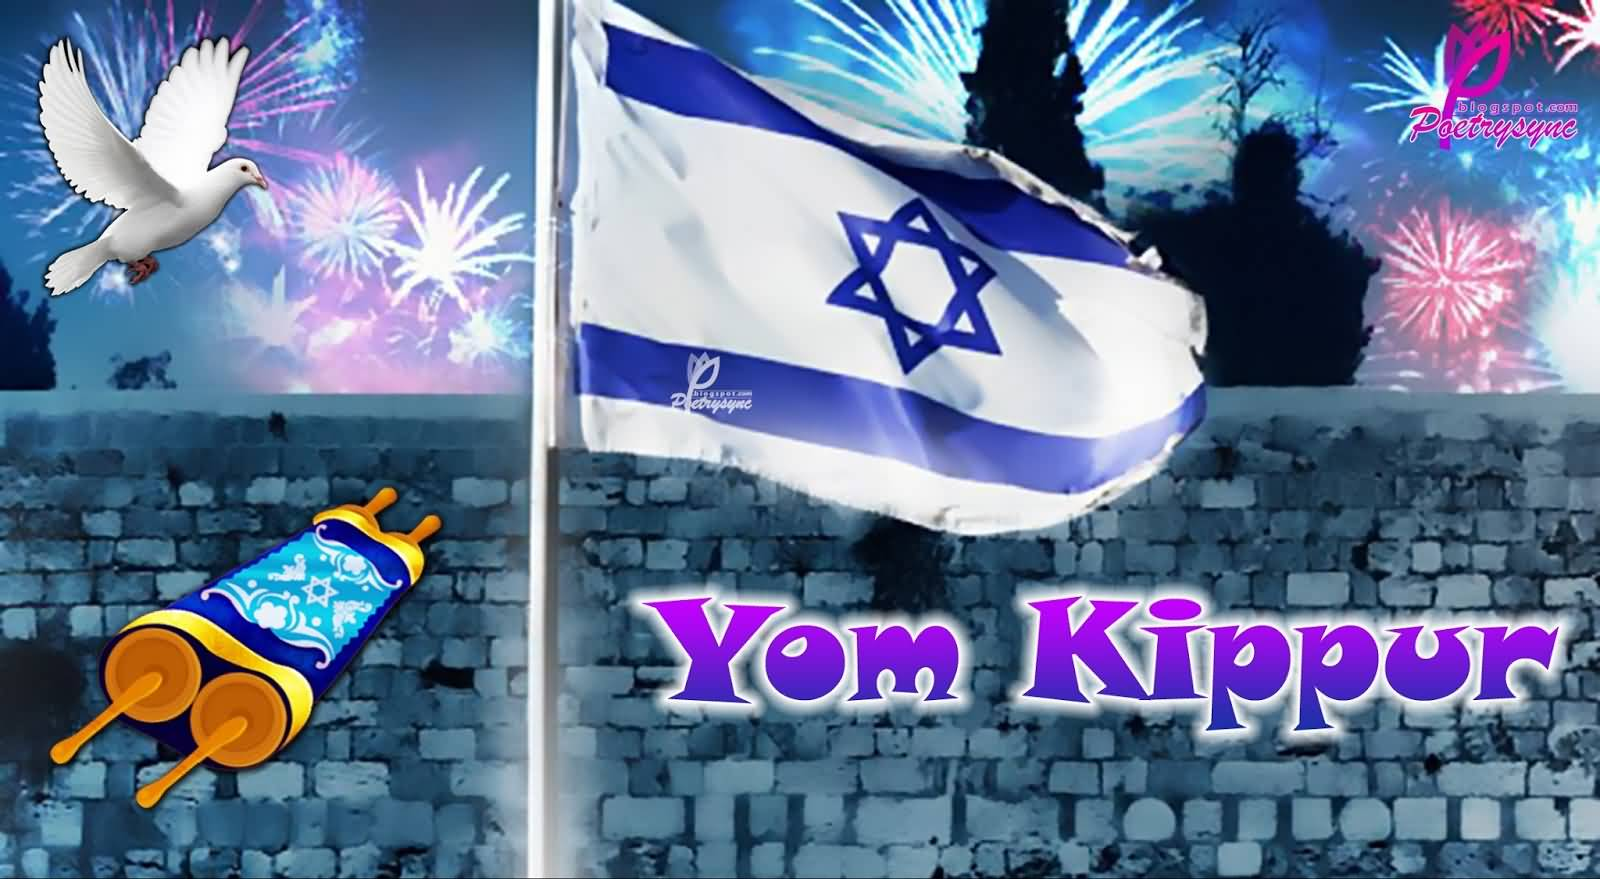 42 best pictures and photos of yom kippur wishes